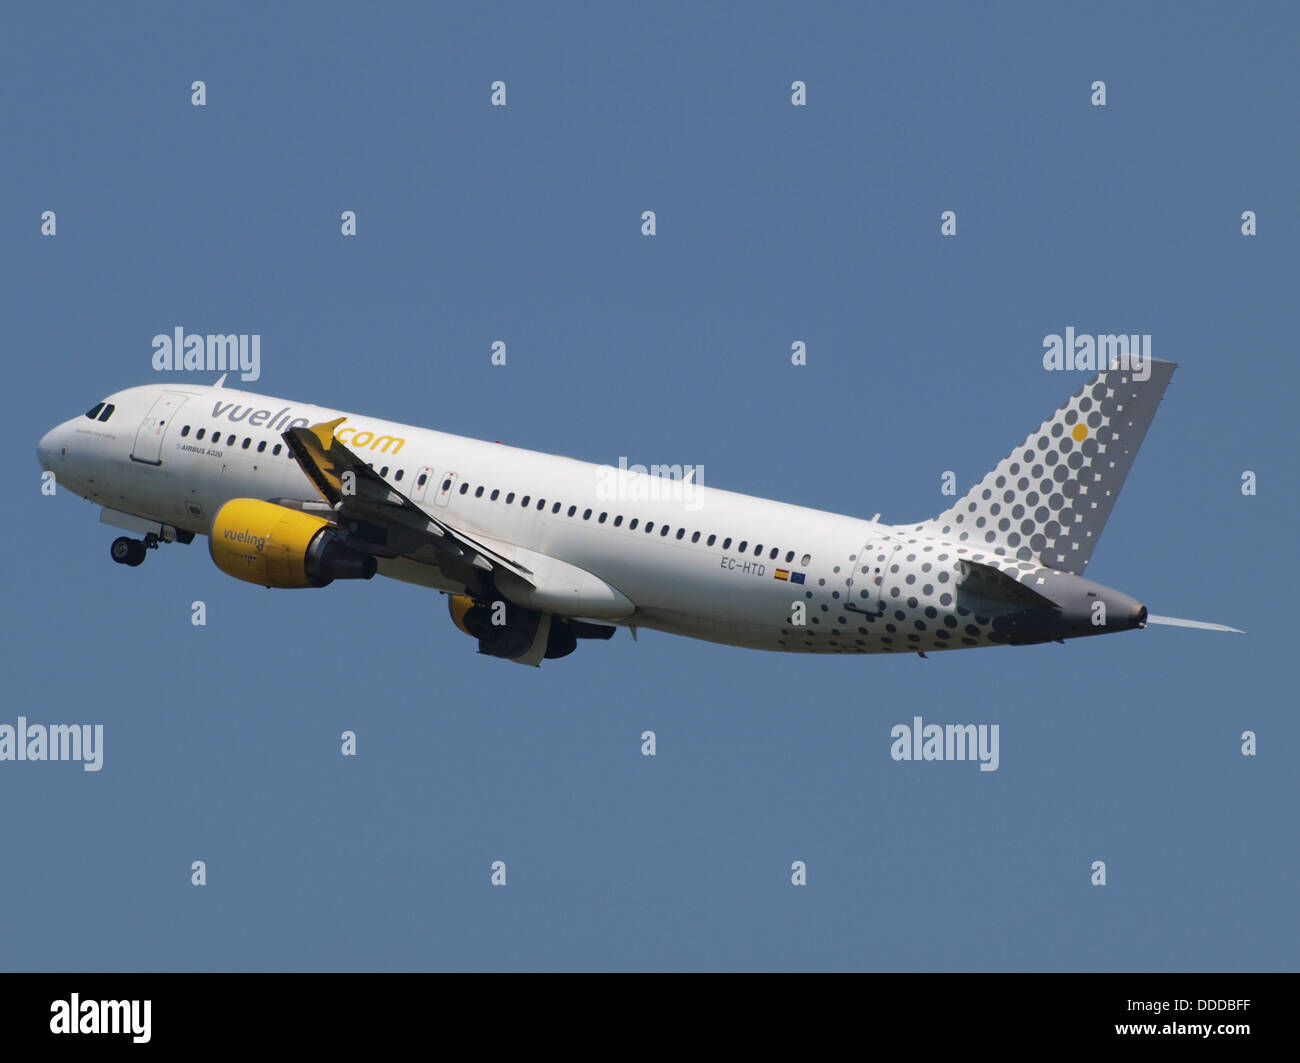 EC-HTD Vueling Airbus A320-214 - cn 1550 take-off 21July2013 pic-005 - Stock Image